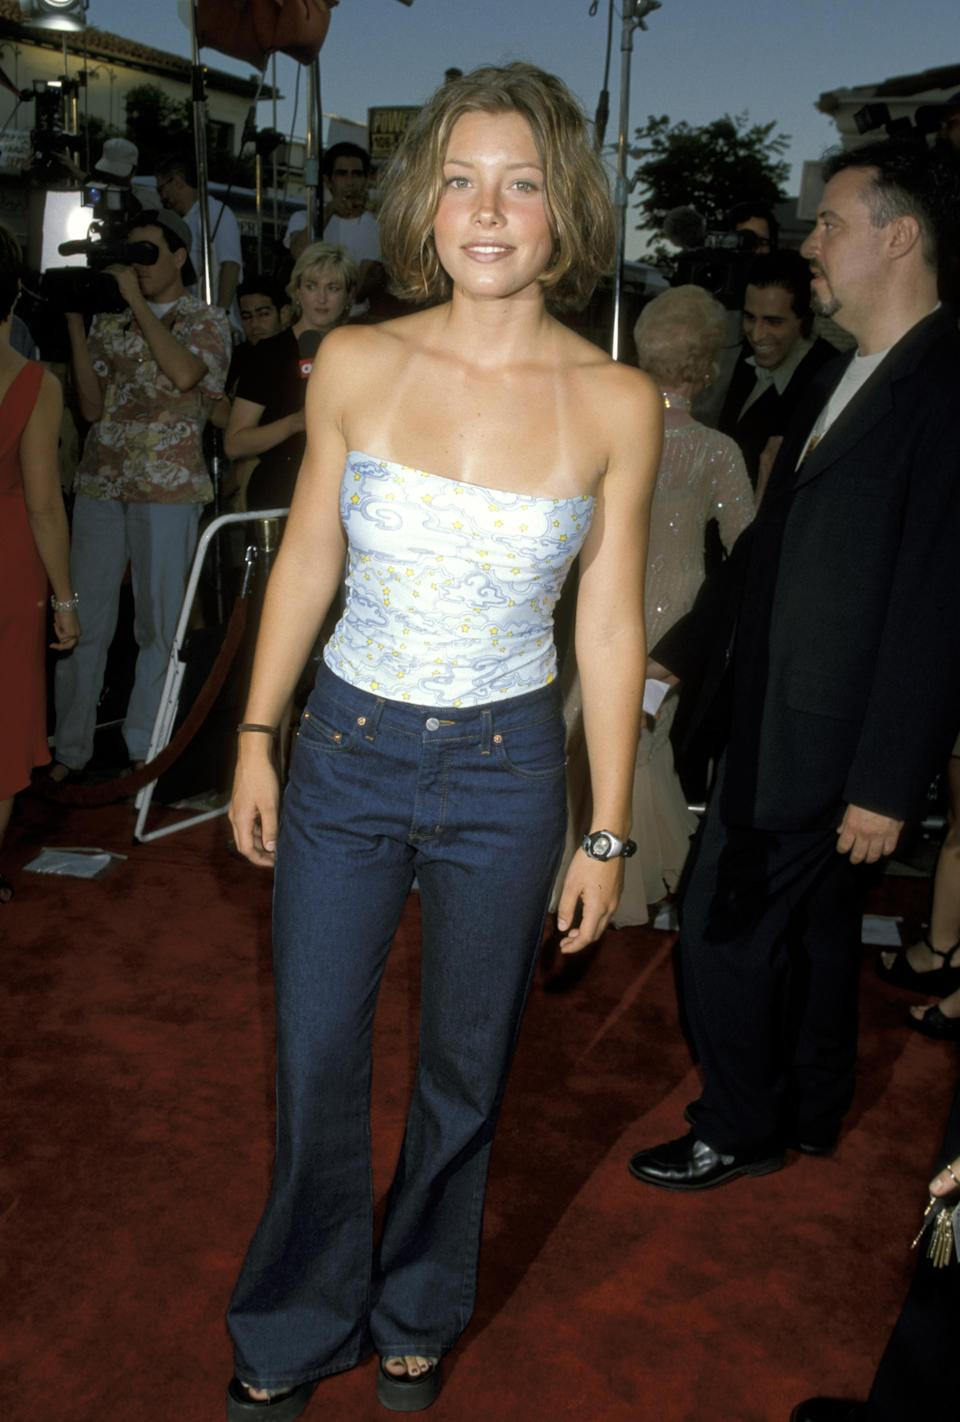 Jessica Biel arrives at the premiere of <em>Halloween H2O</em> in 1998, in Los Angeles. (Photo: Jim Smeal/WireImage)